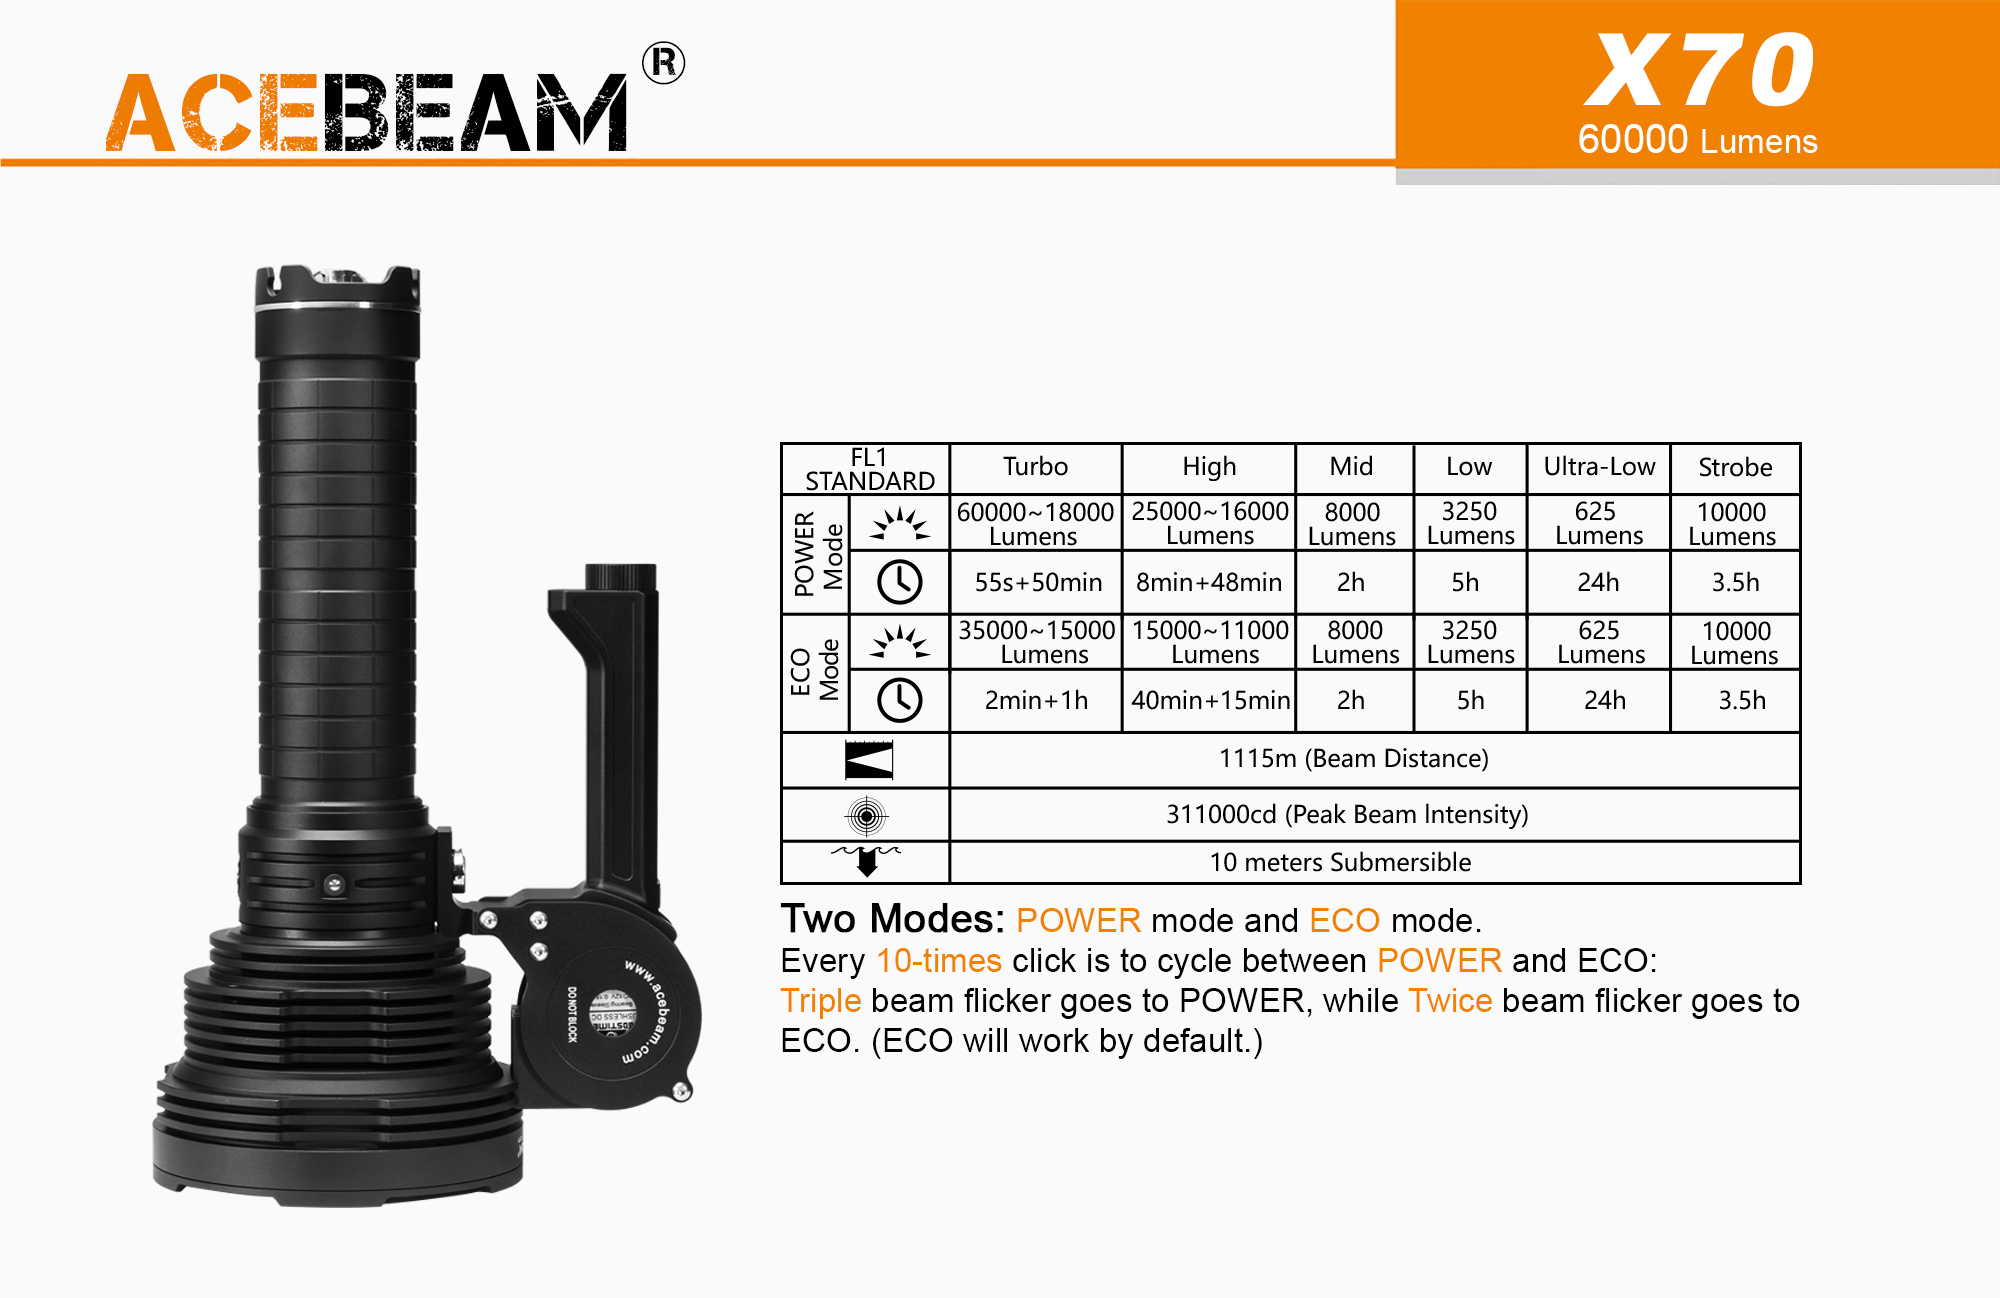 ACEBEAM X70 TOTAL 60000 LM